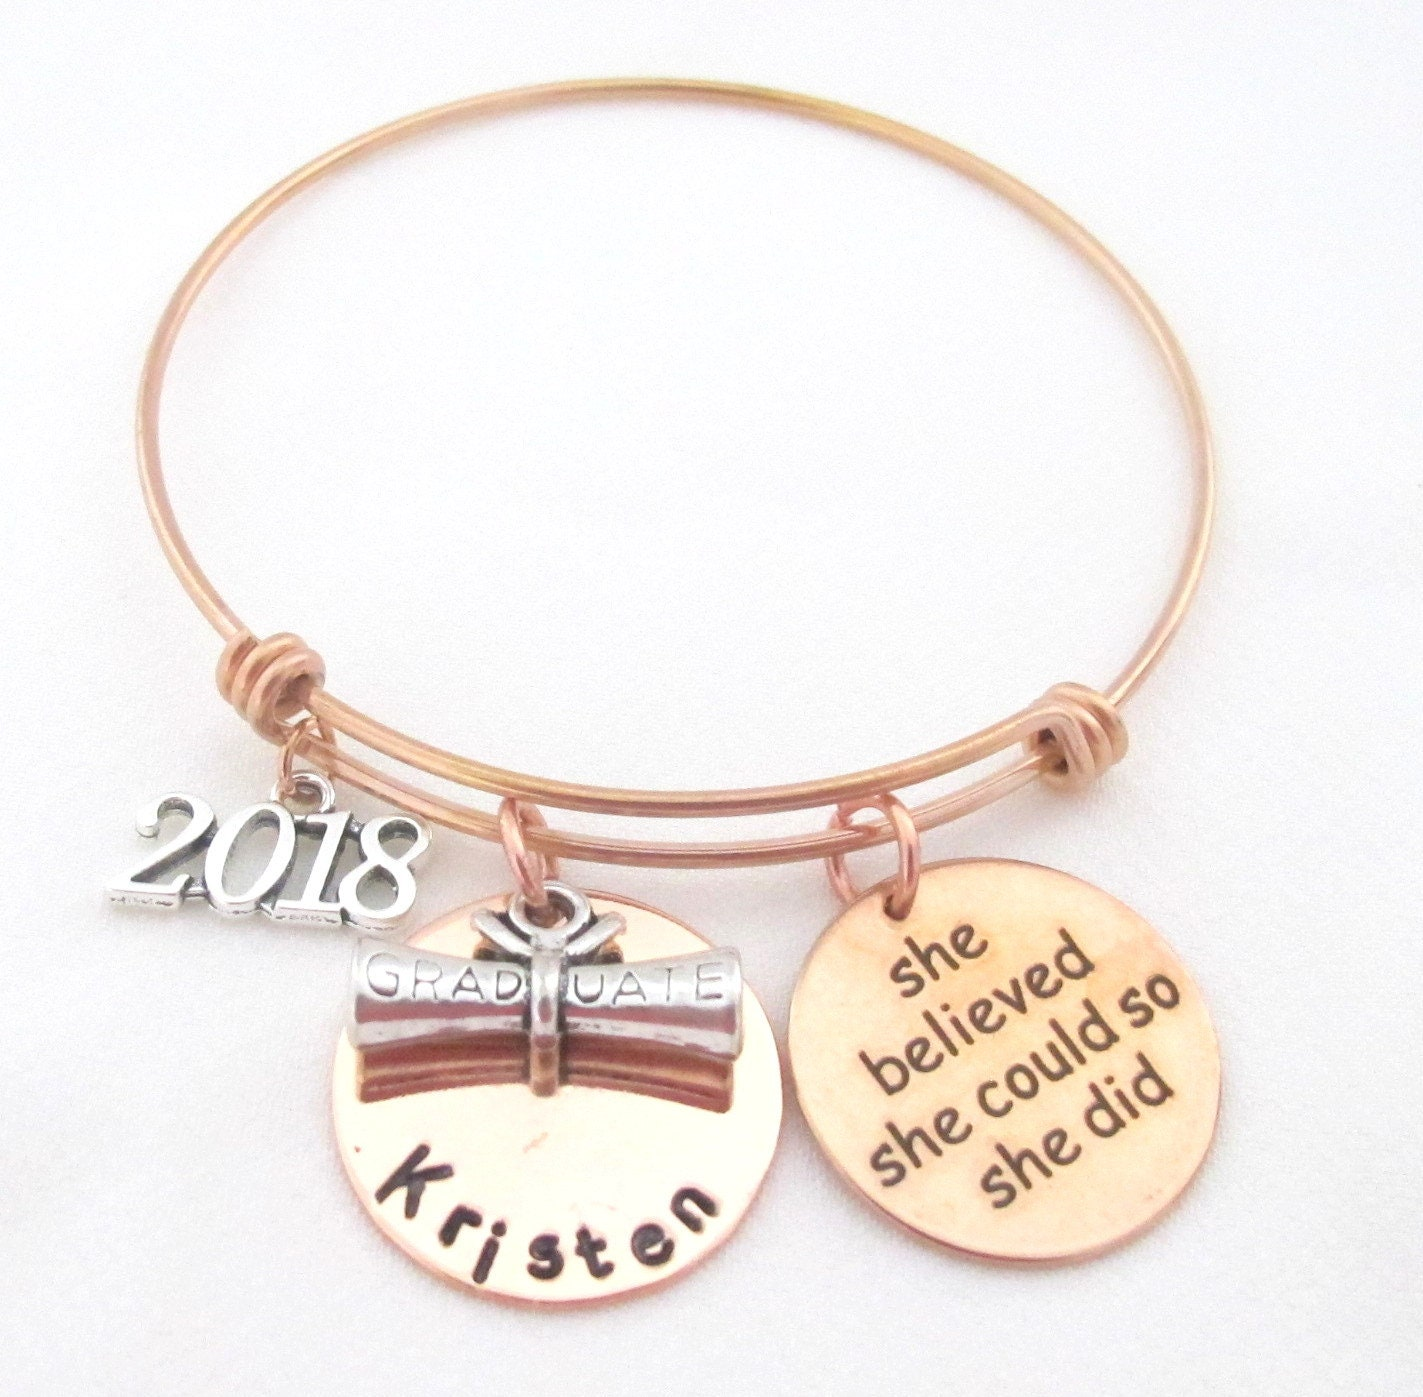 impressive gifts cap gift dangle pink girls class style of and grand design a graduation crystals with remembrance enchanting ideas bracelet bracelets charm ashleigh for personalized diploma